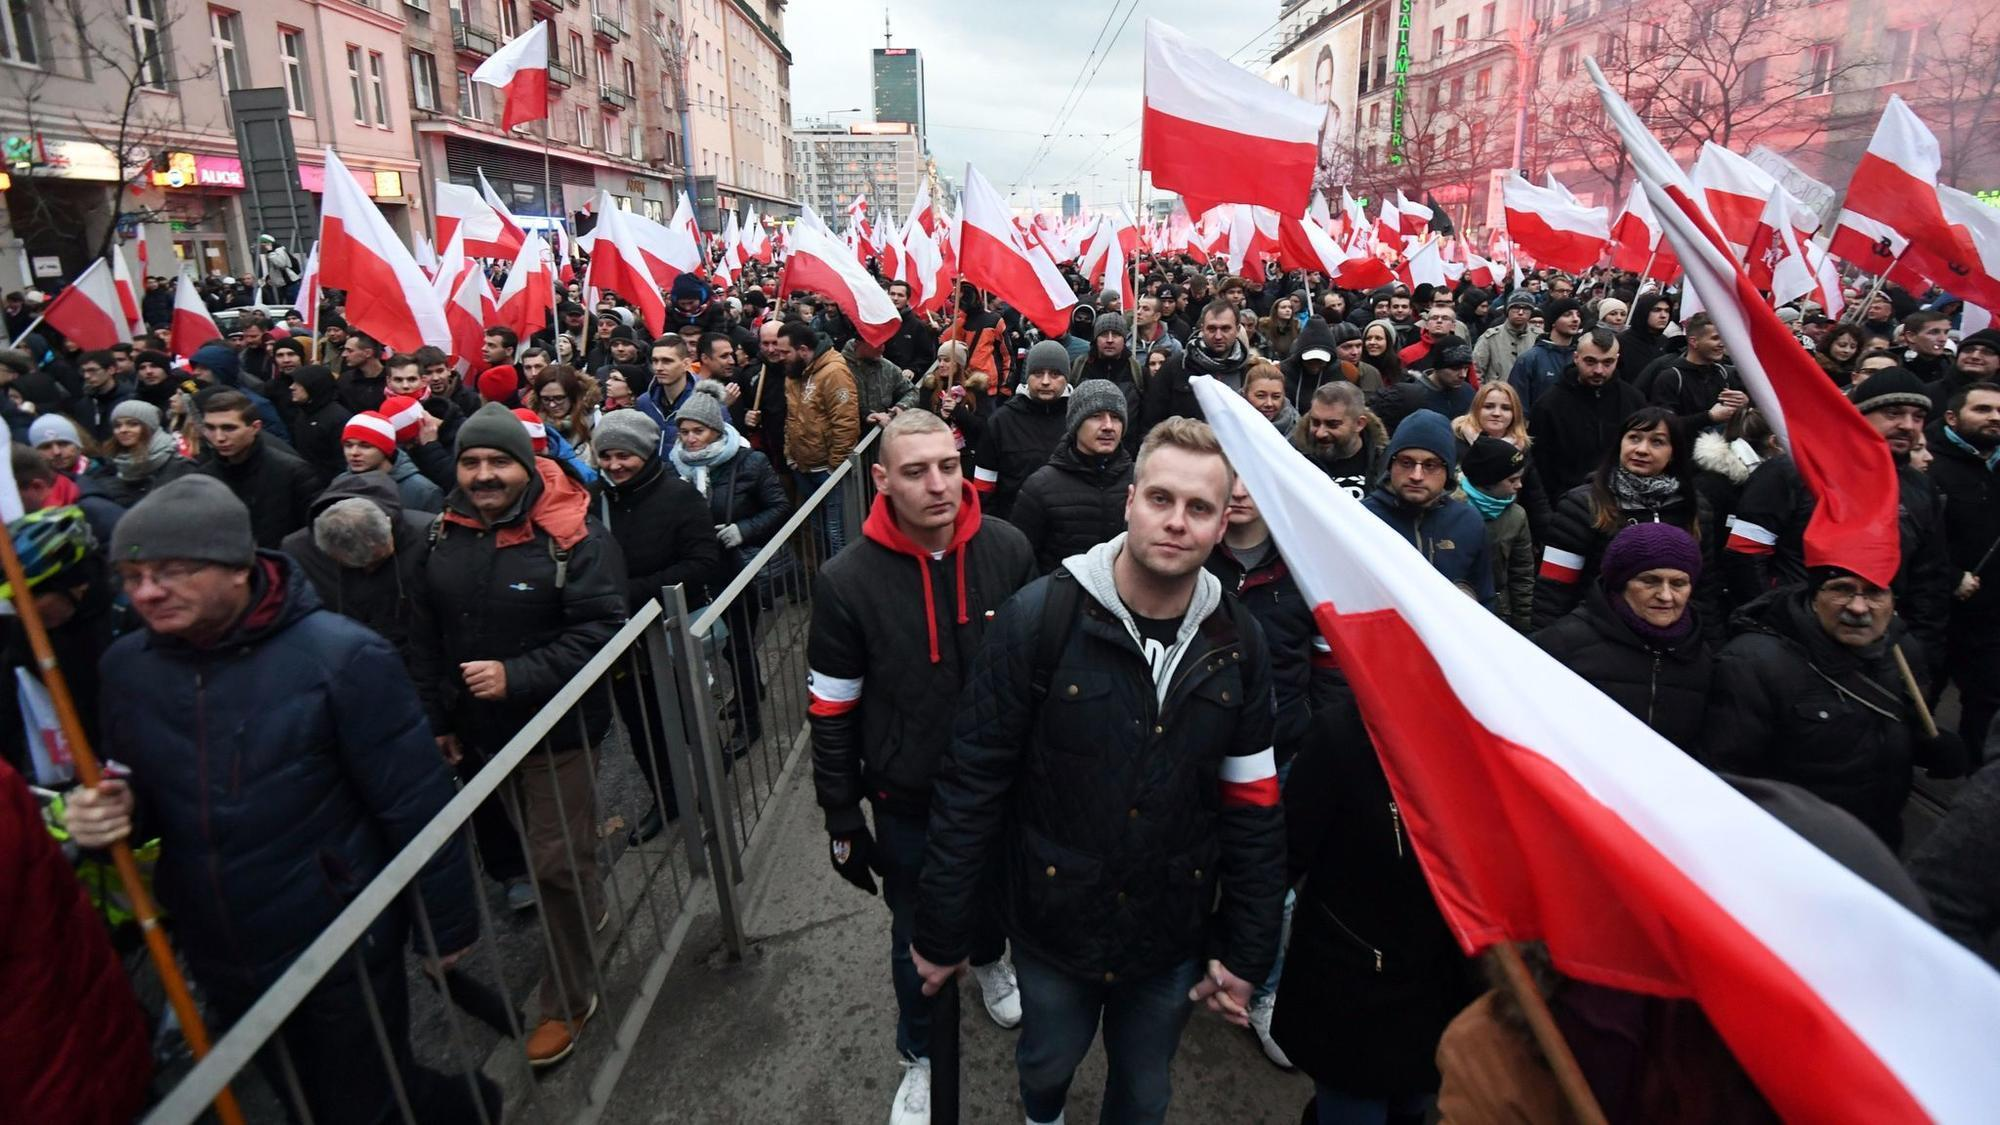 Christianity Is Incompatible With Nationalism la fg poland march 20171113  society culture politics government other history europe art